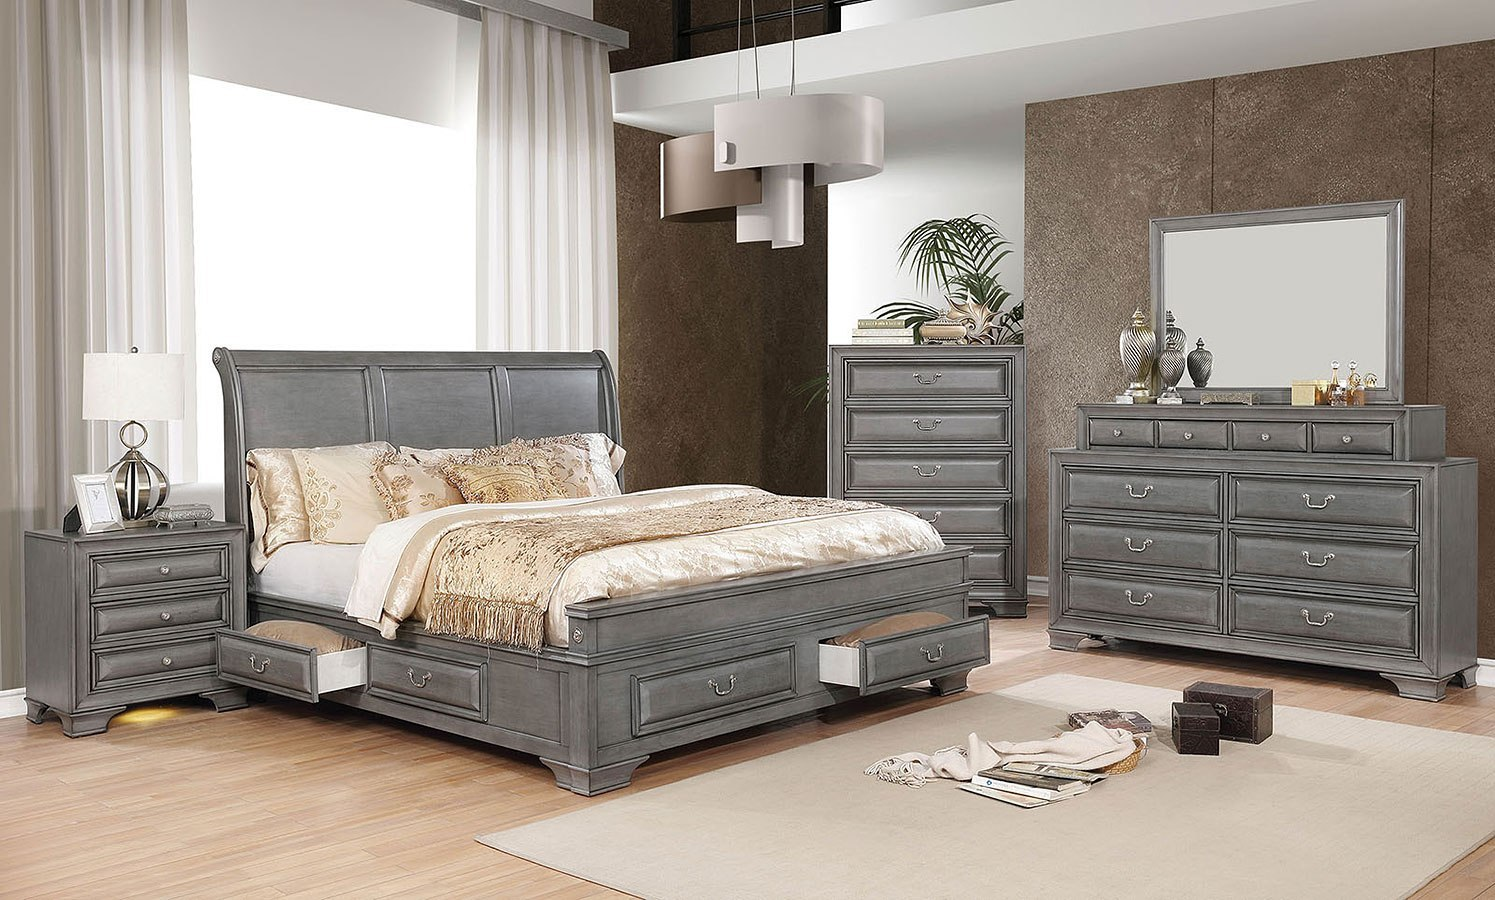 Brandt Storage Bedroom Set (Gray)